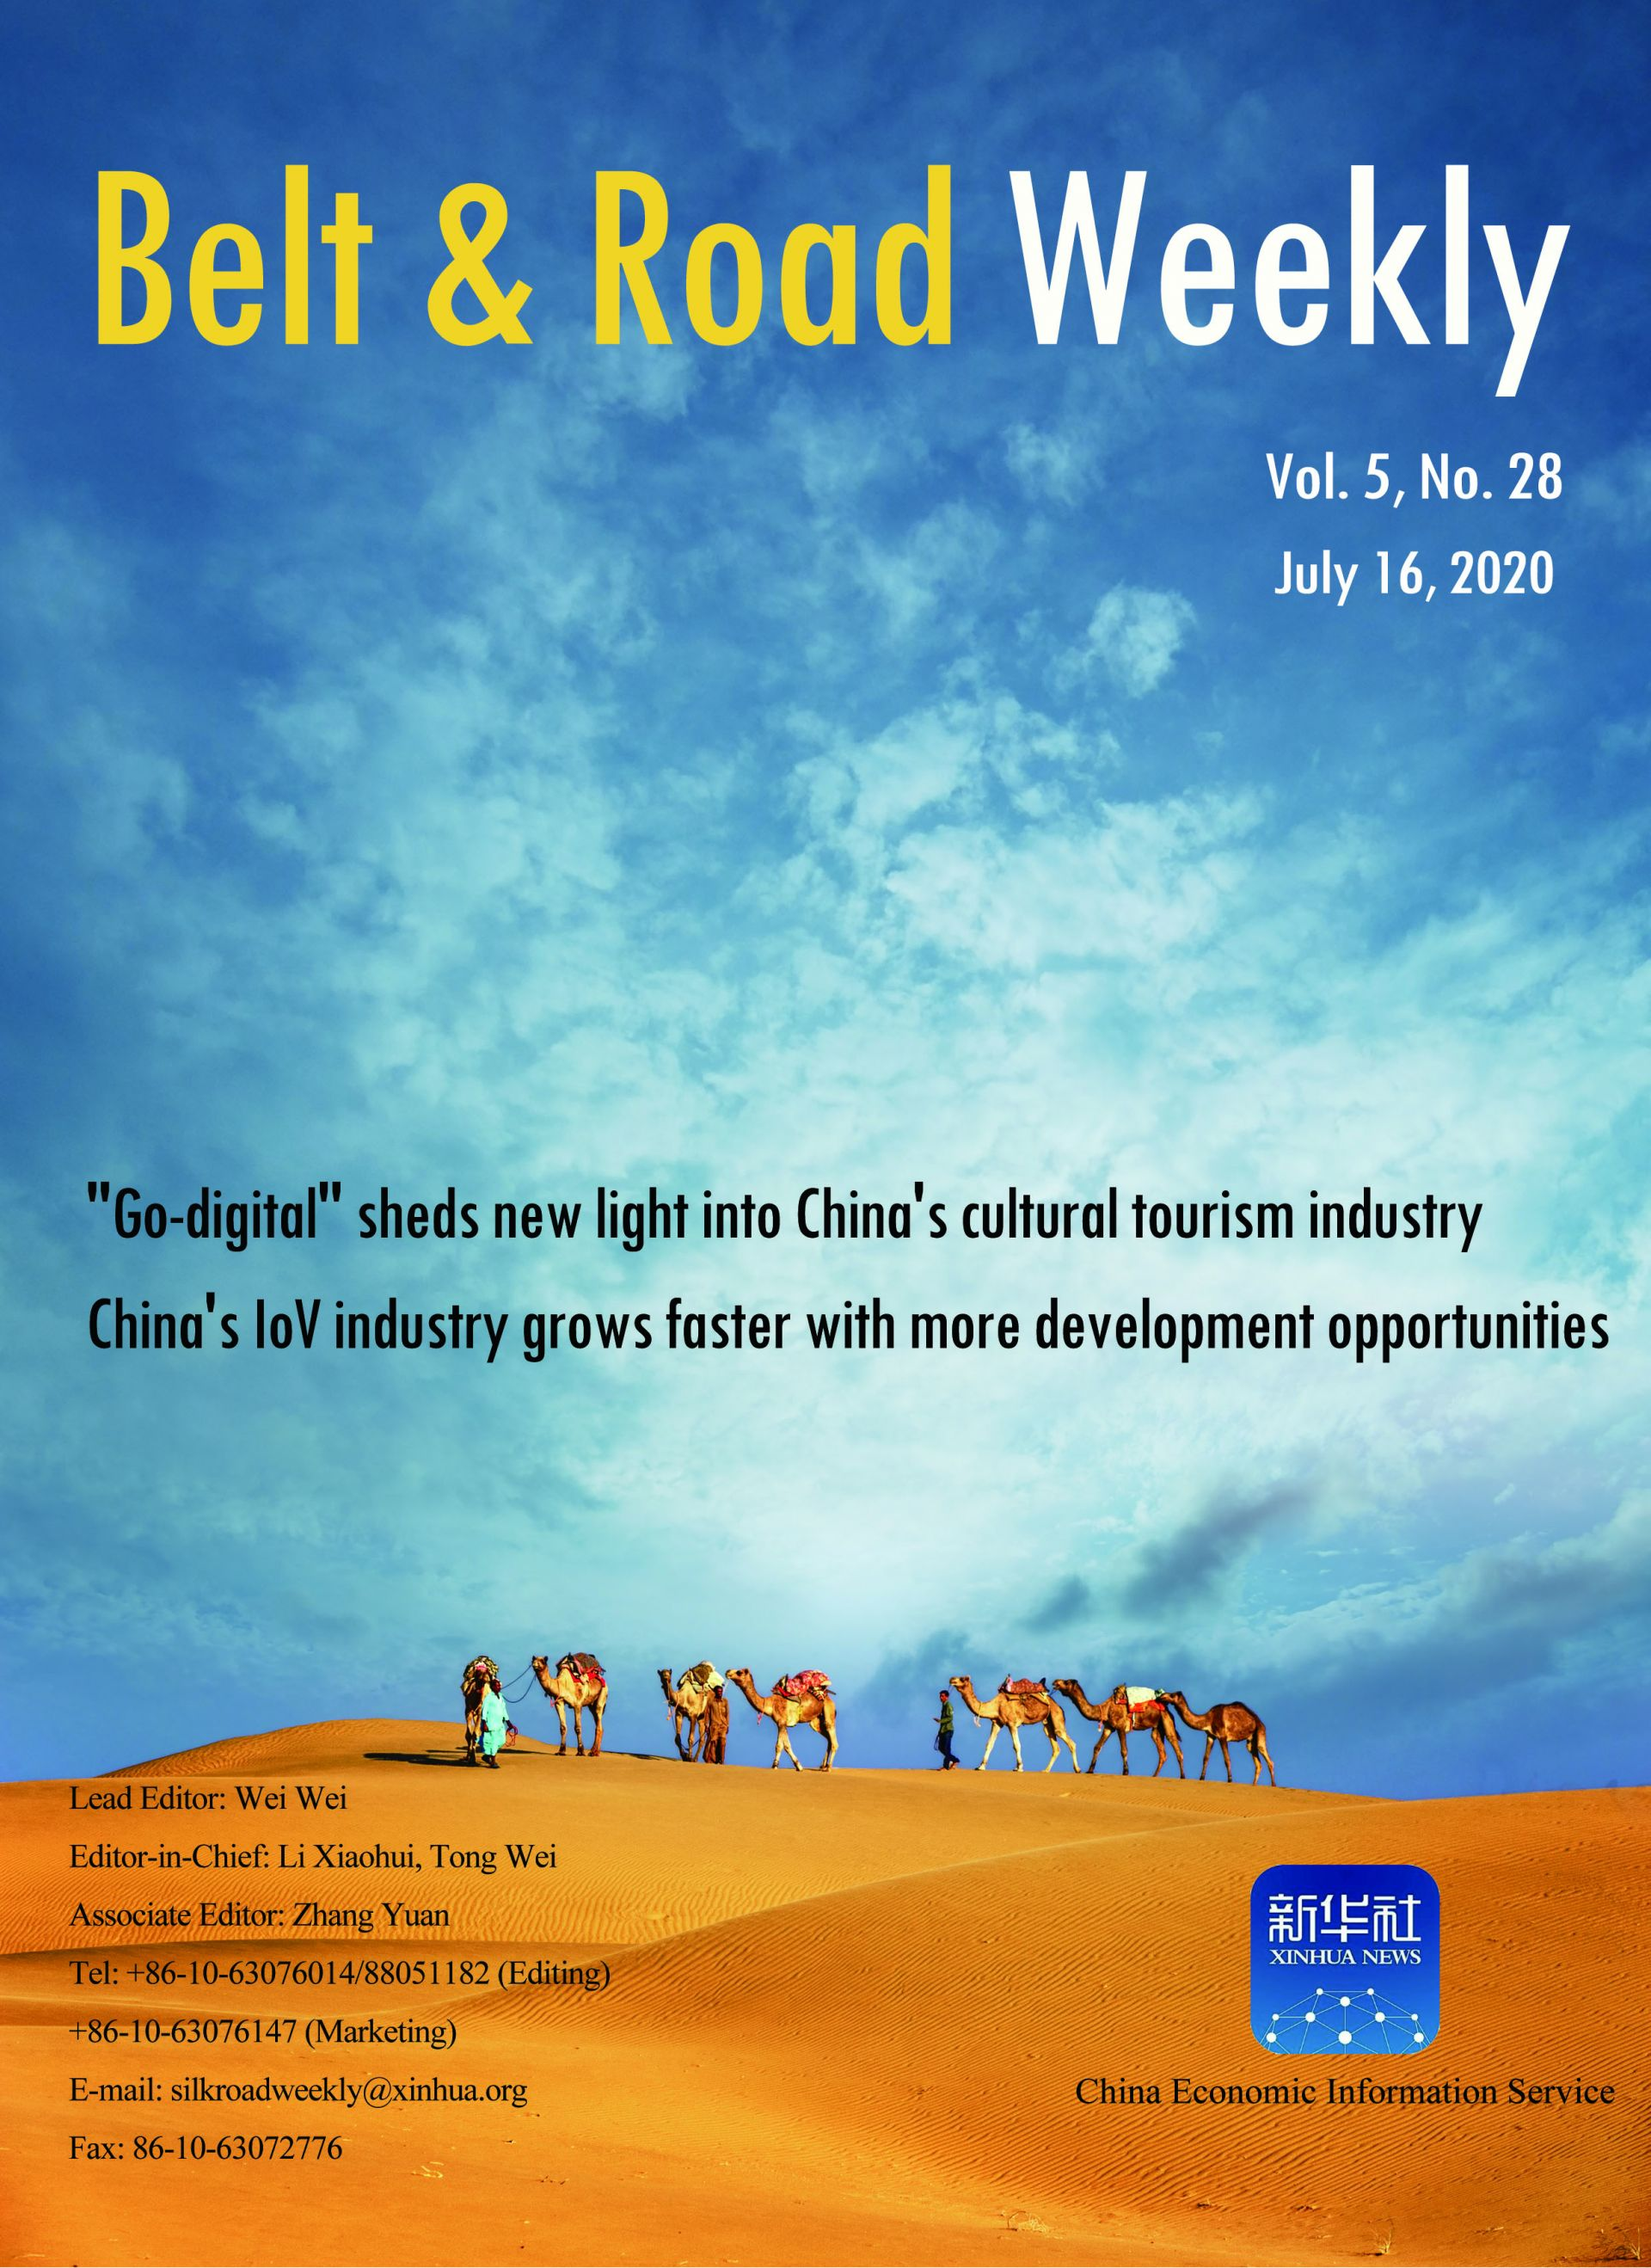 Belt and Road Weekly Vol. 5 No. 28